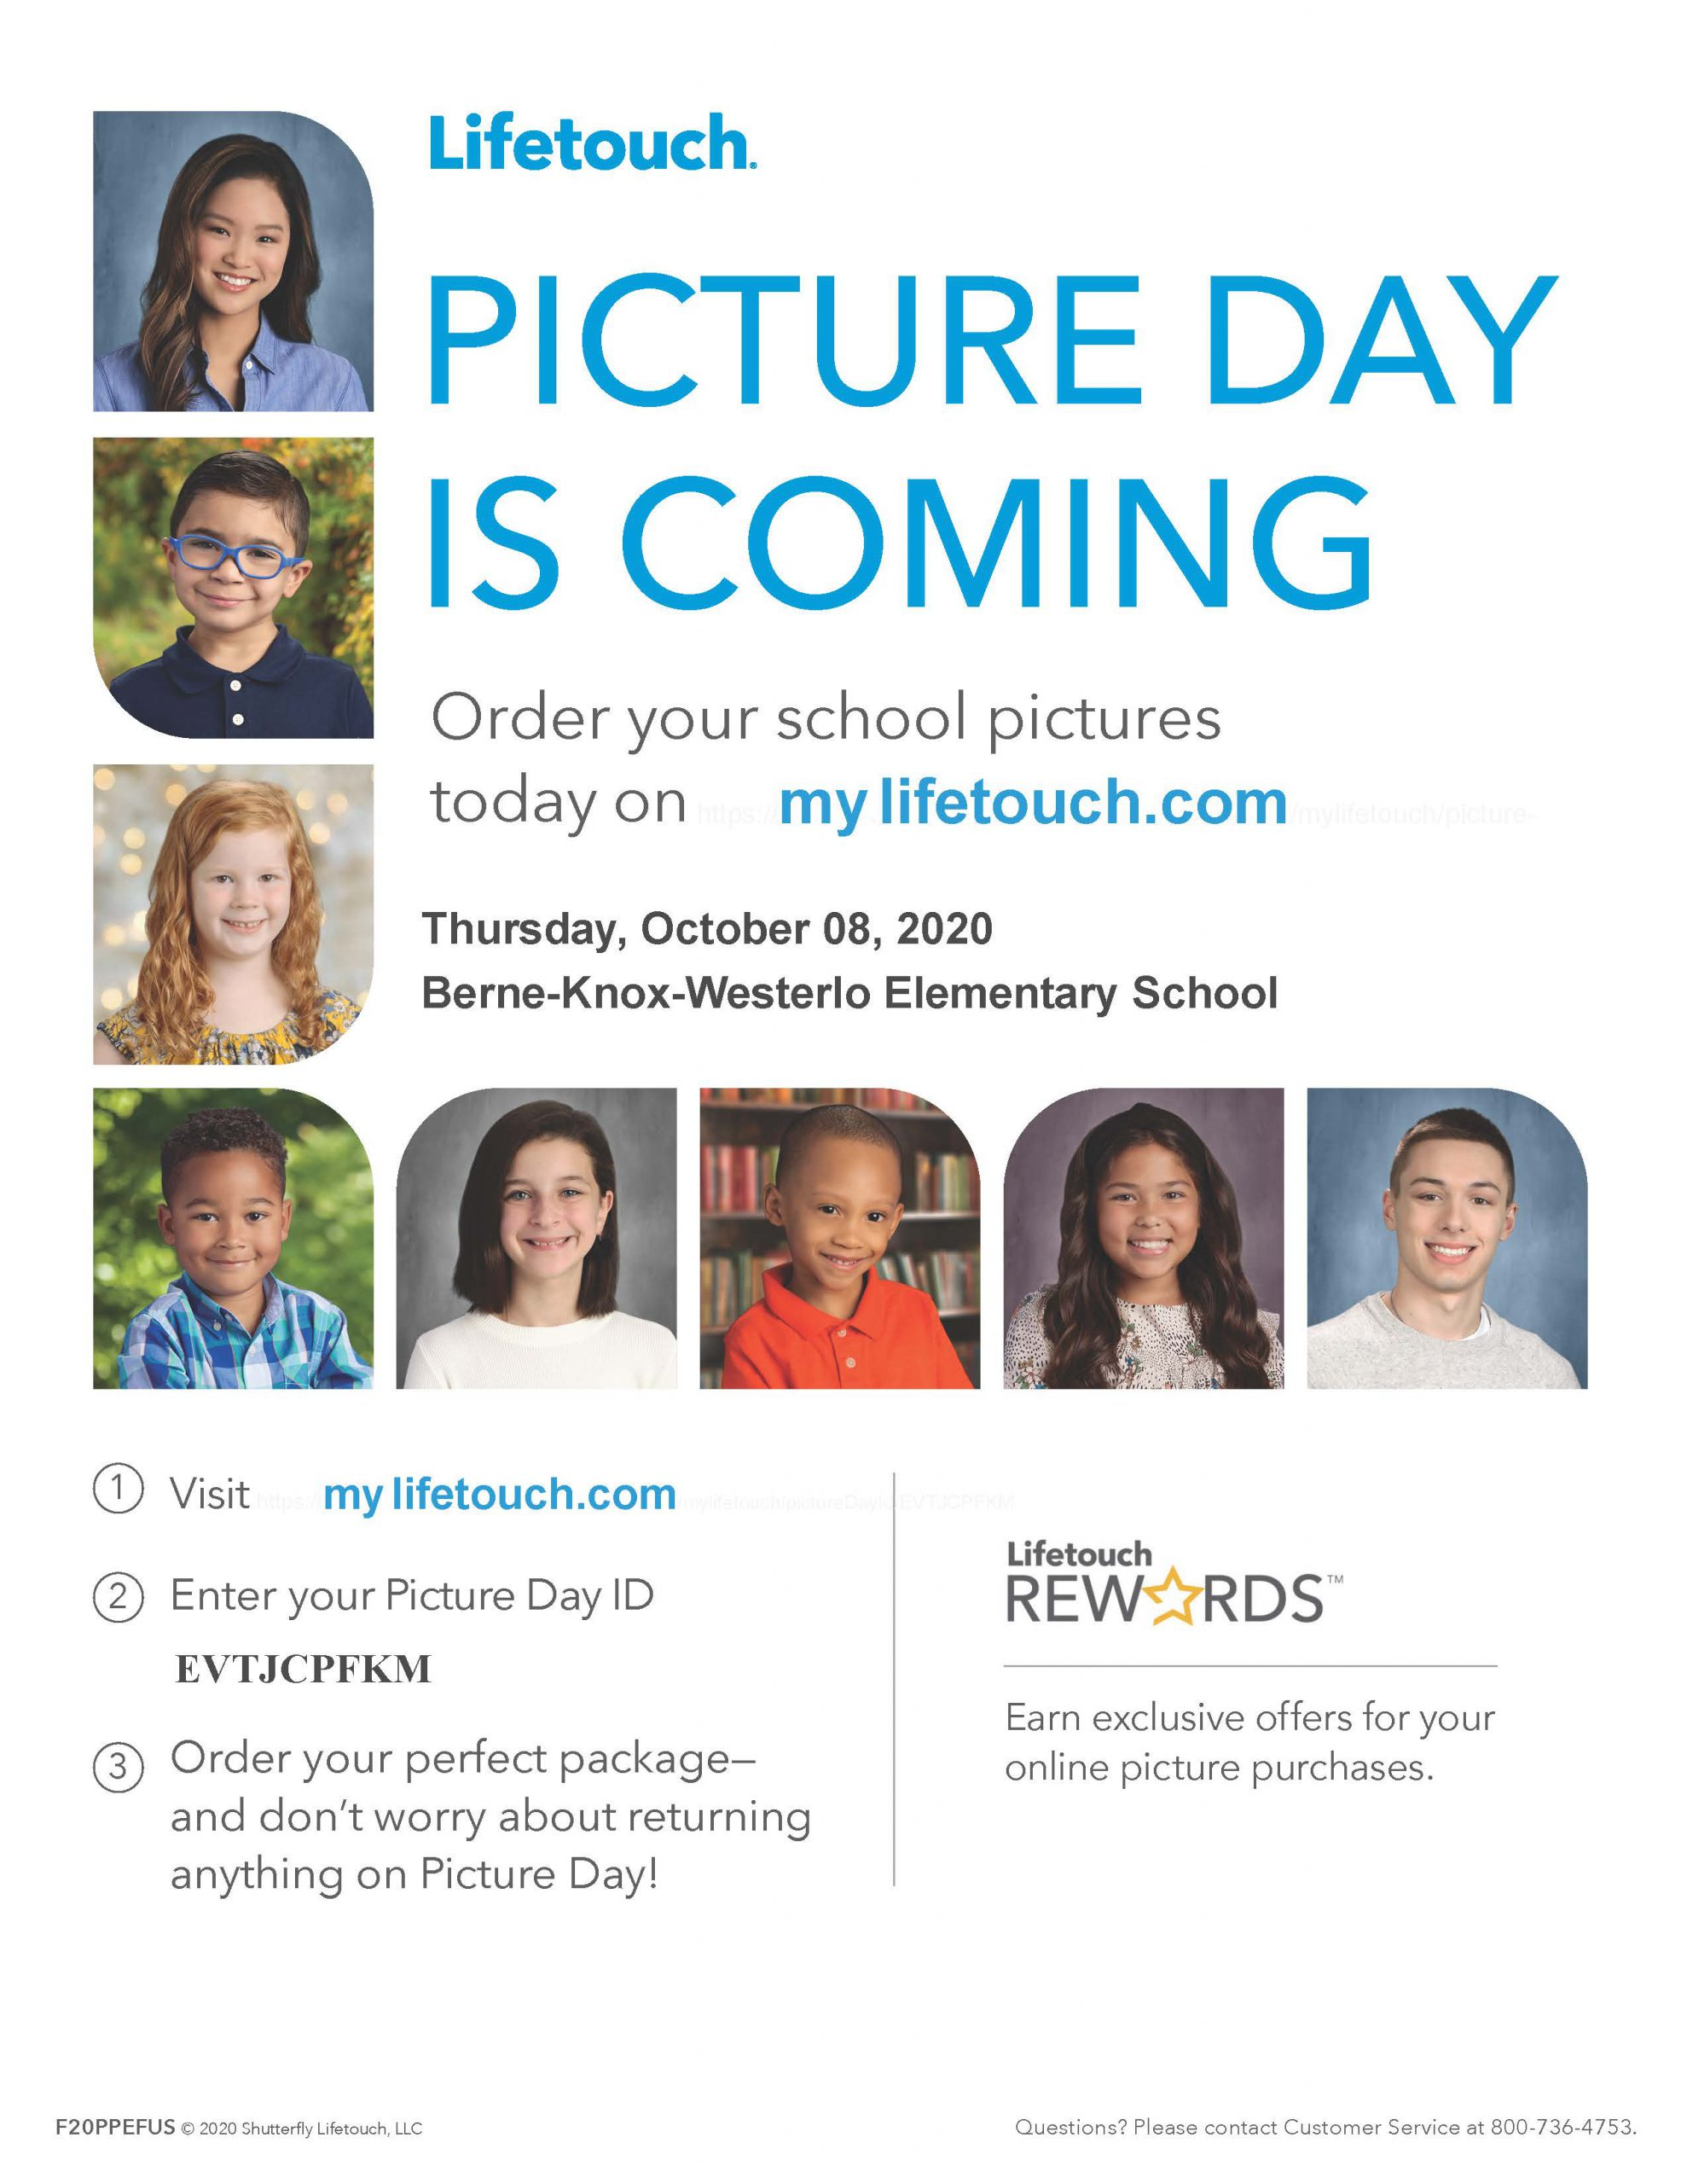 BKW Elementary Picture Day flier